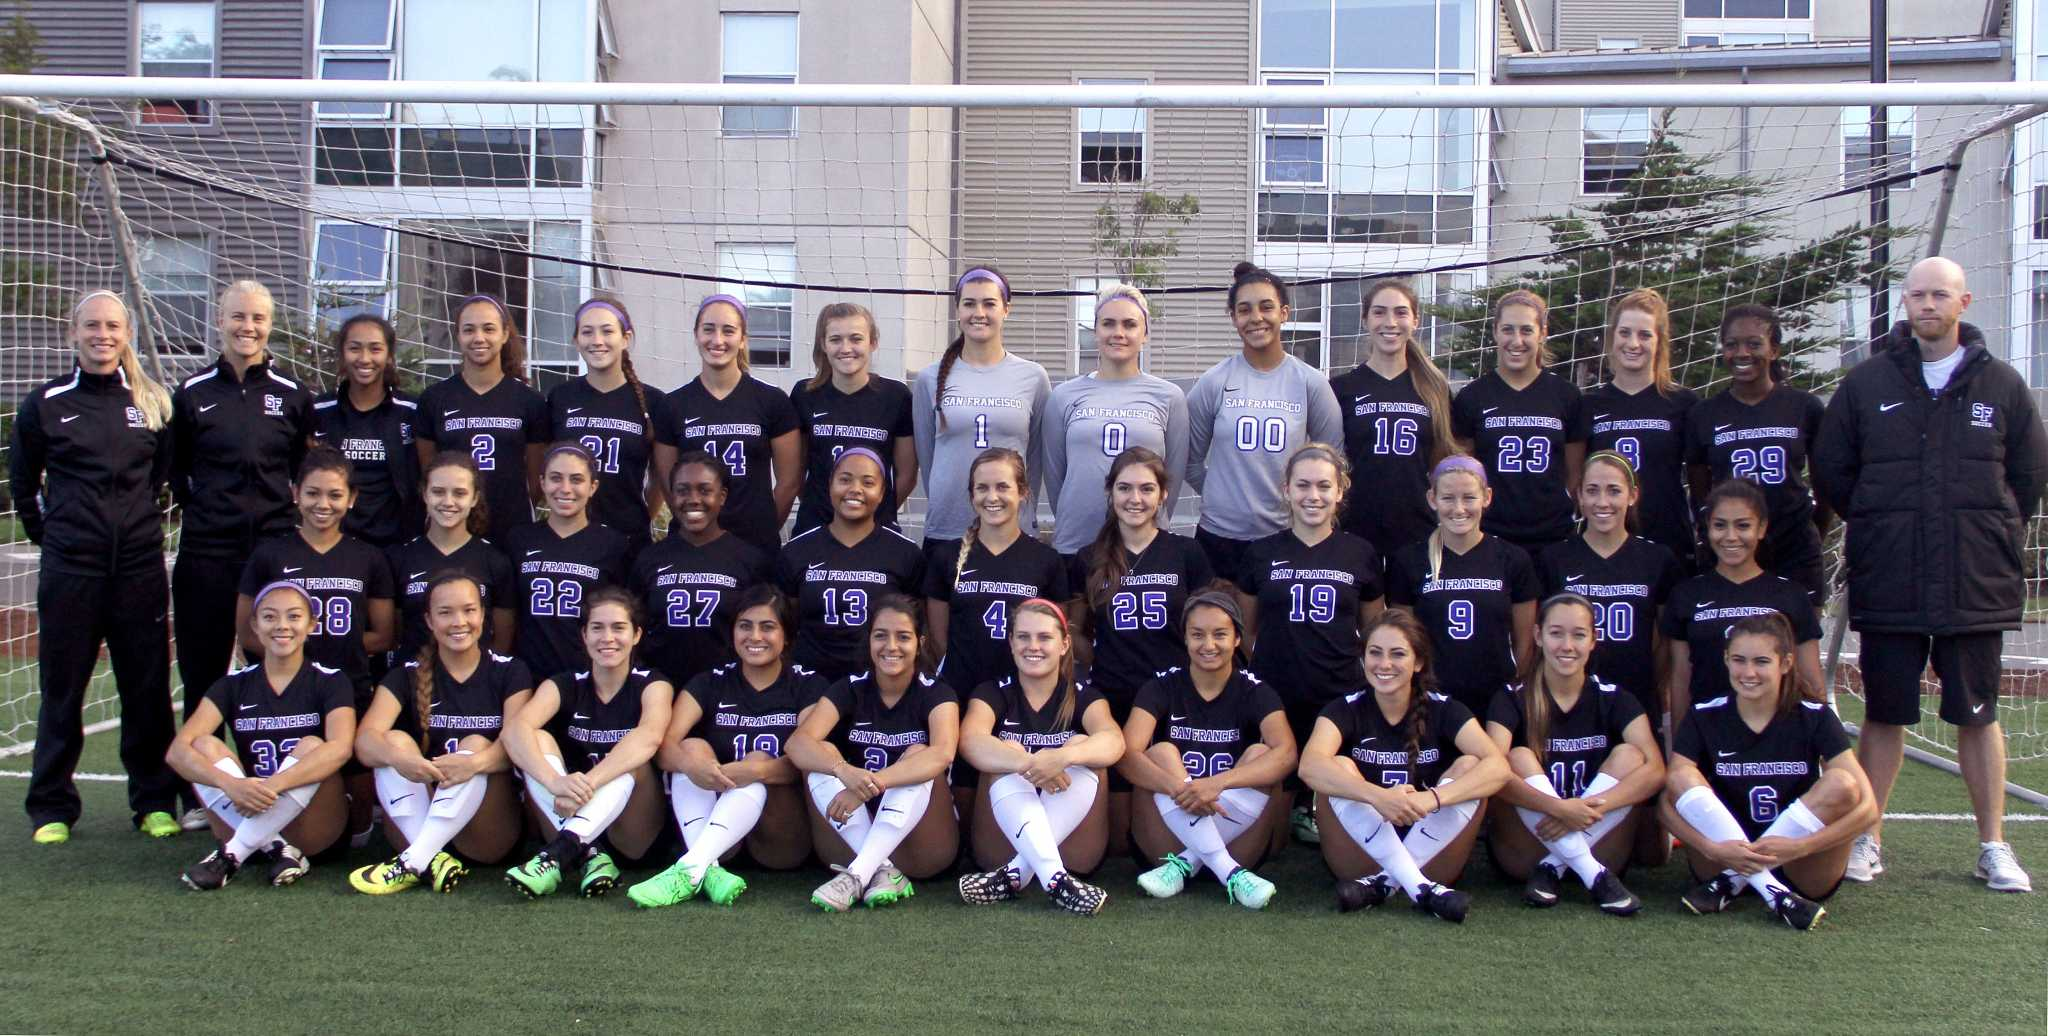 SF State's Women's Soccer team poses for a group photo on West Greens on Thursday, August 27. (Angelica Williams / Xpress)